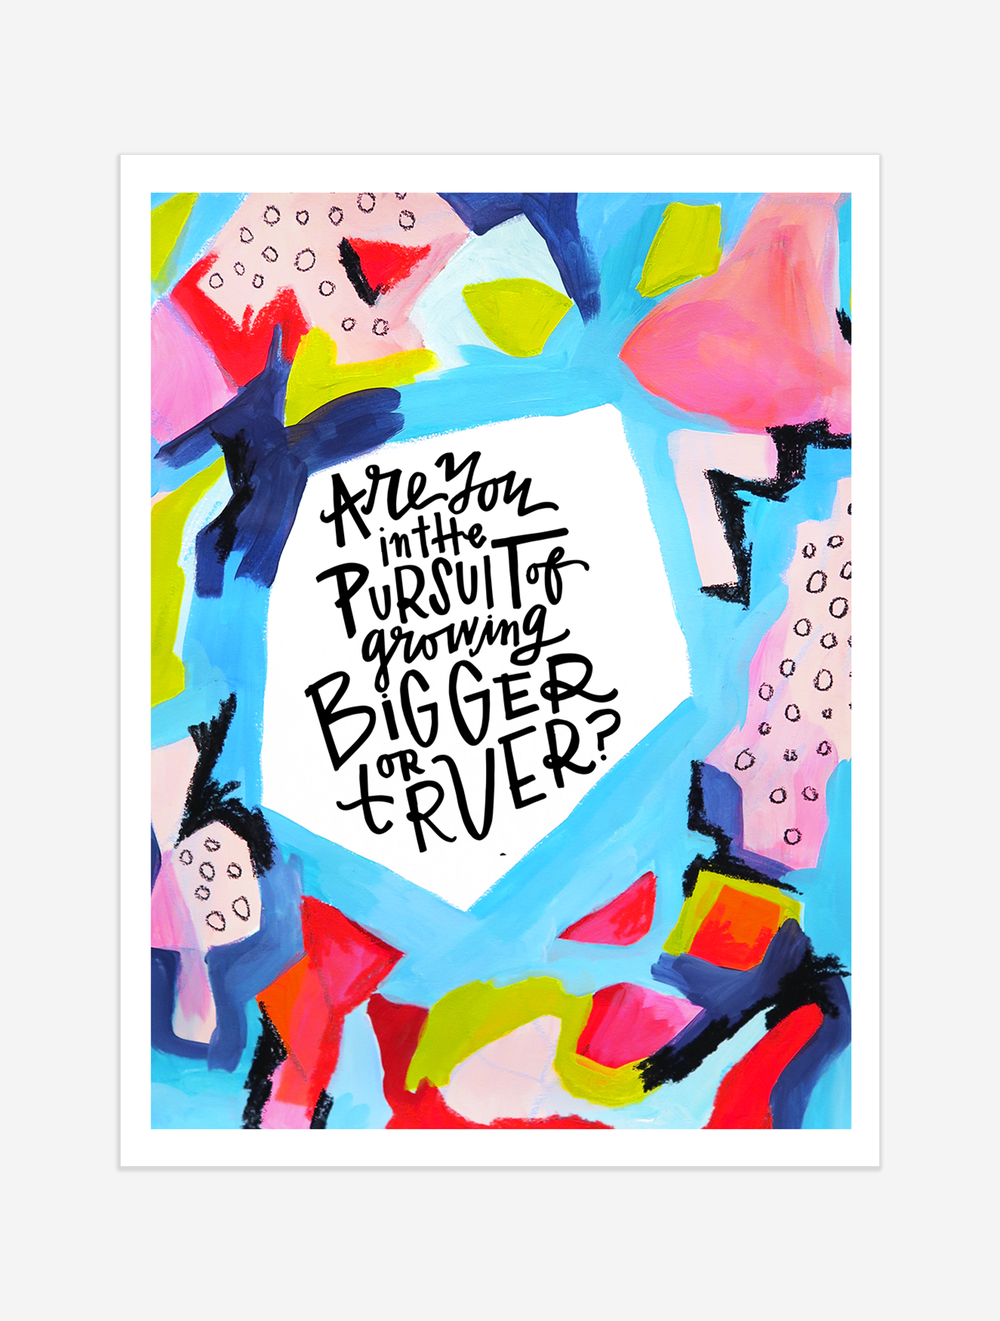 A reminder to go after growing truer, not necessarily bigger. $25 giclee print available at the Made Vibrant Art Shop.